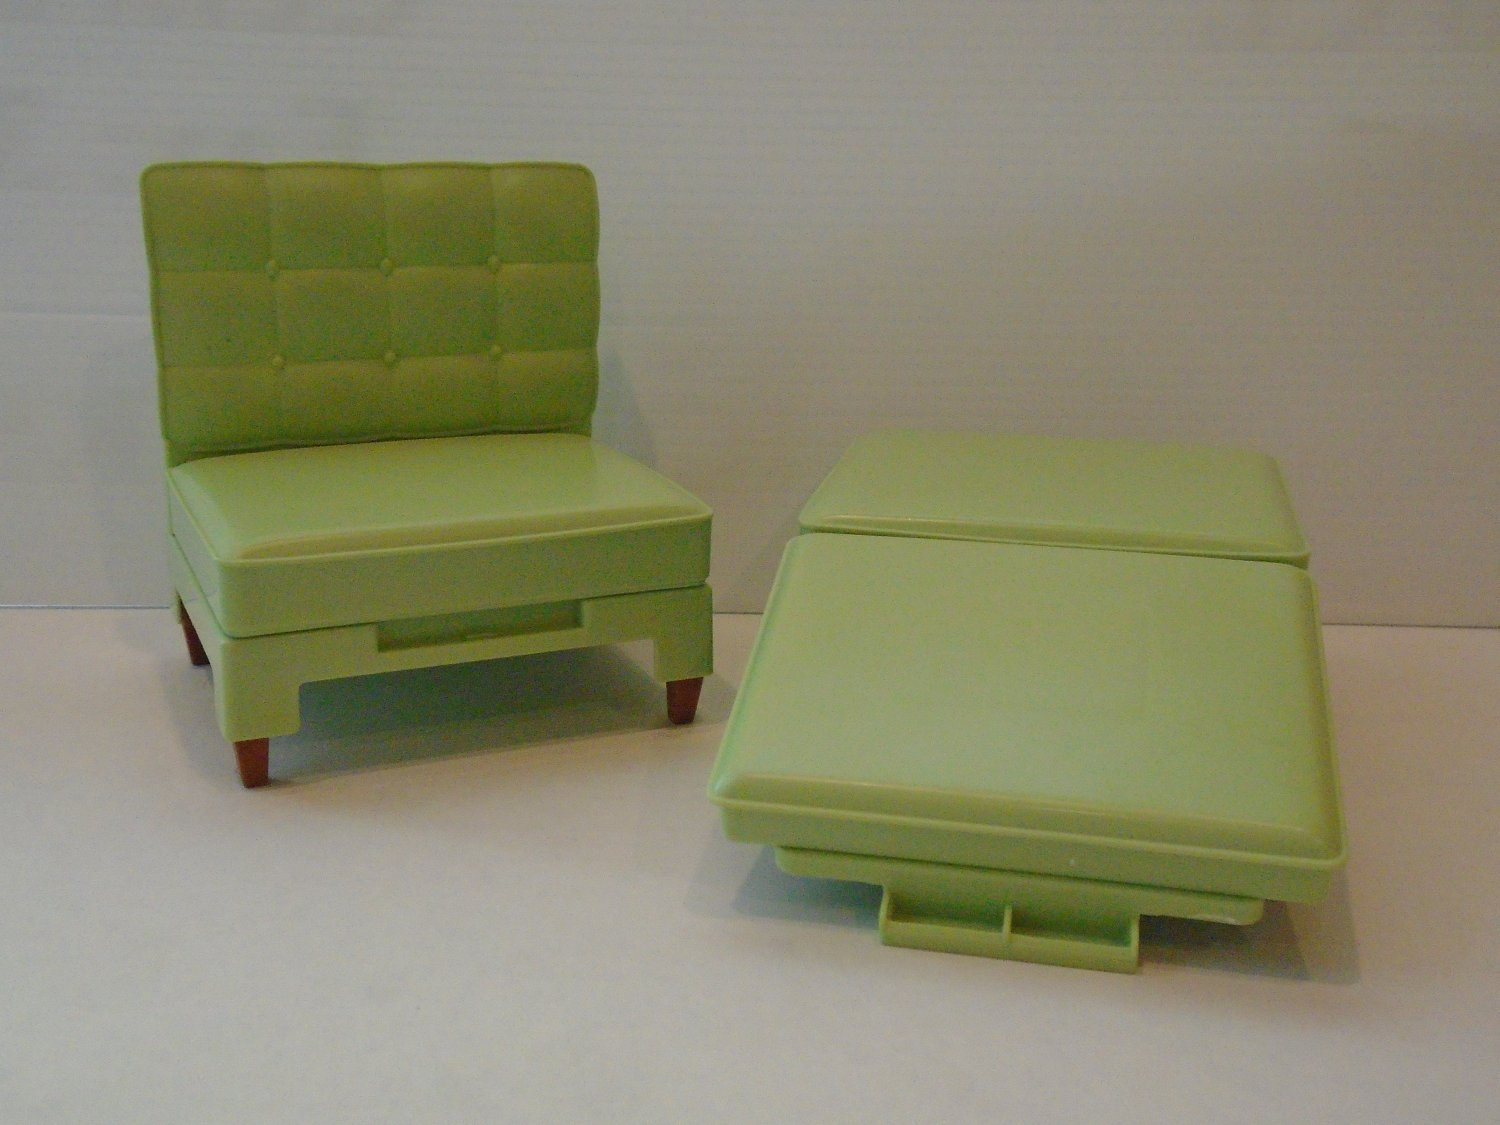 VINTAGE BARBIE GREEN CHAIR AND OTTOMAN CONVERTS TO BED CLB 968